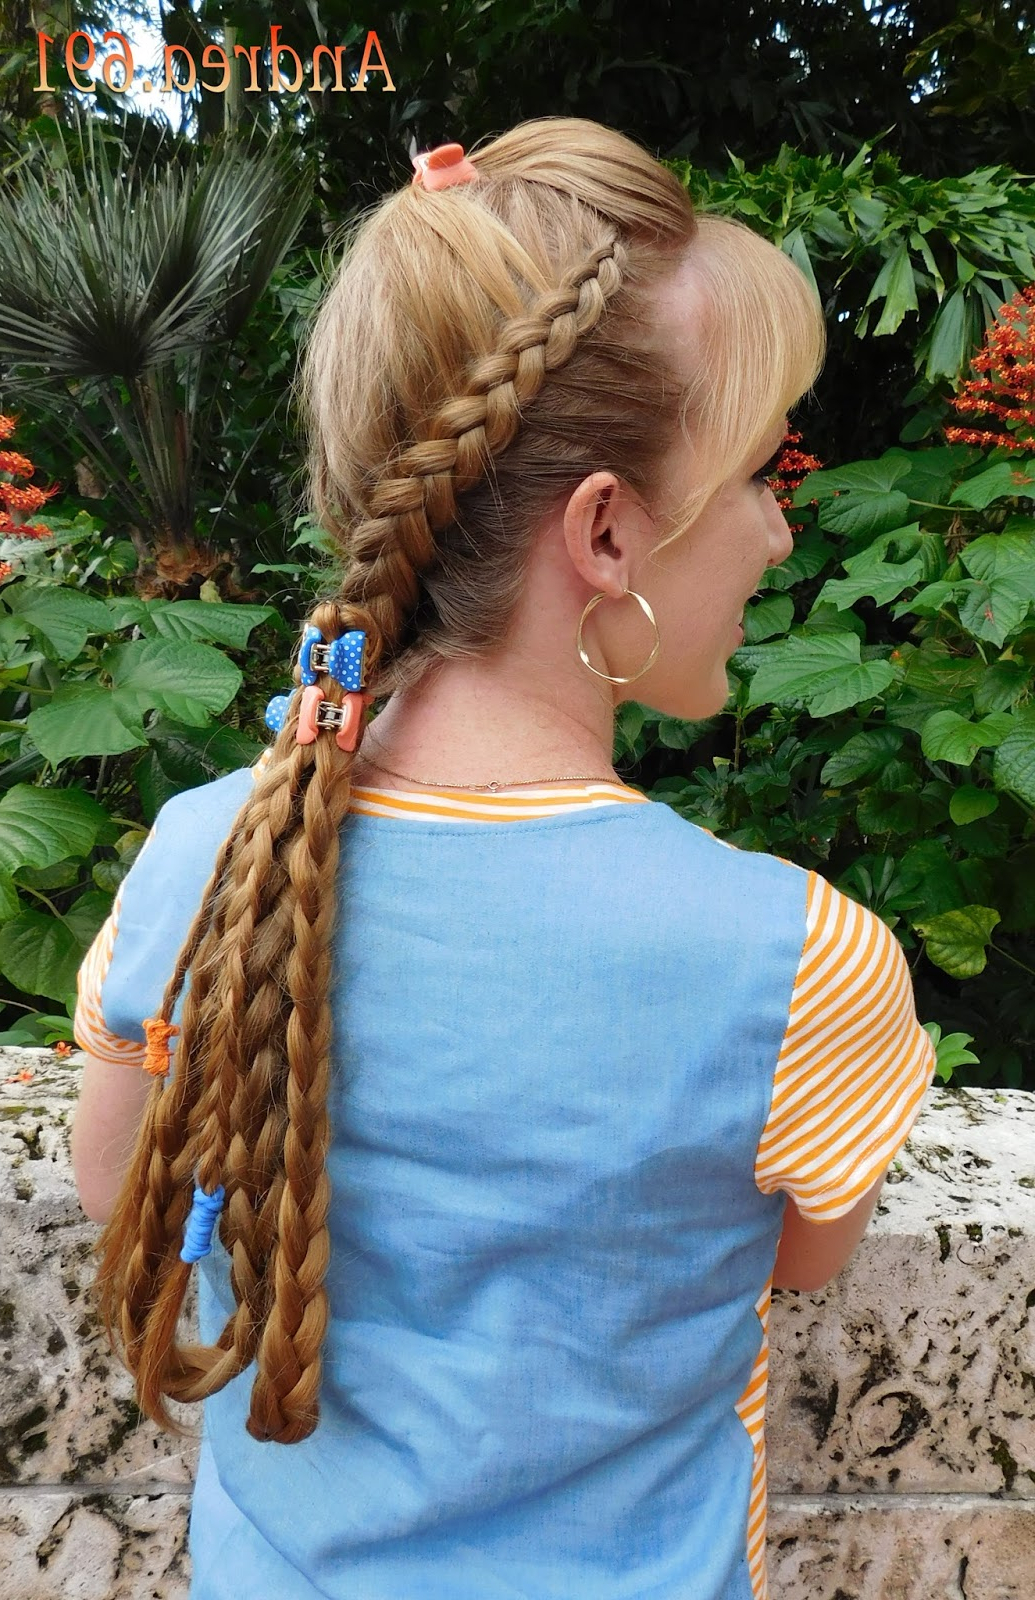 Braids & Hairstyles For Super Long Hair: Double Dutch Braids Intended For Most Current Double Dutch Braids Hairstyles (View 18 of 20)